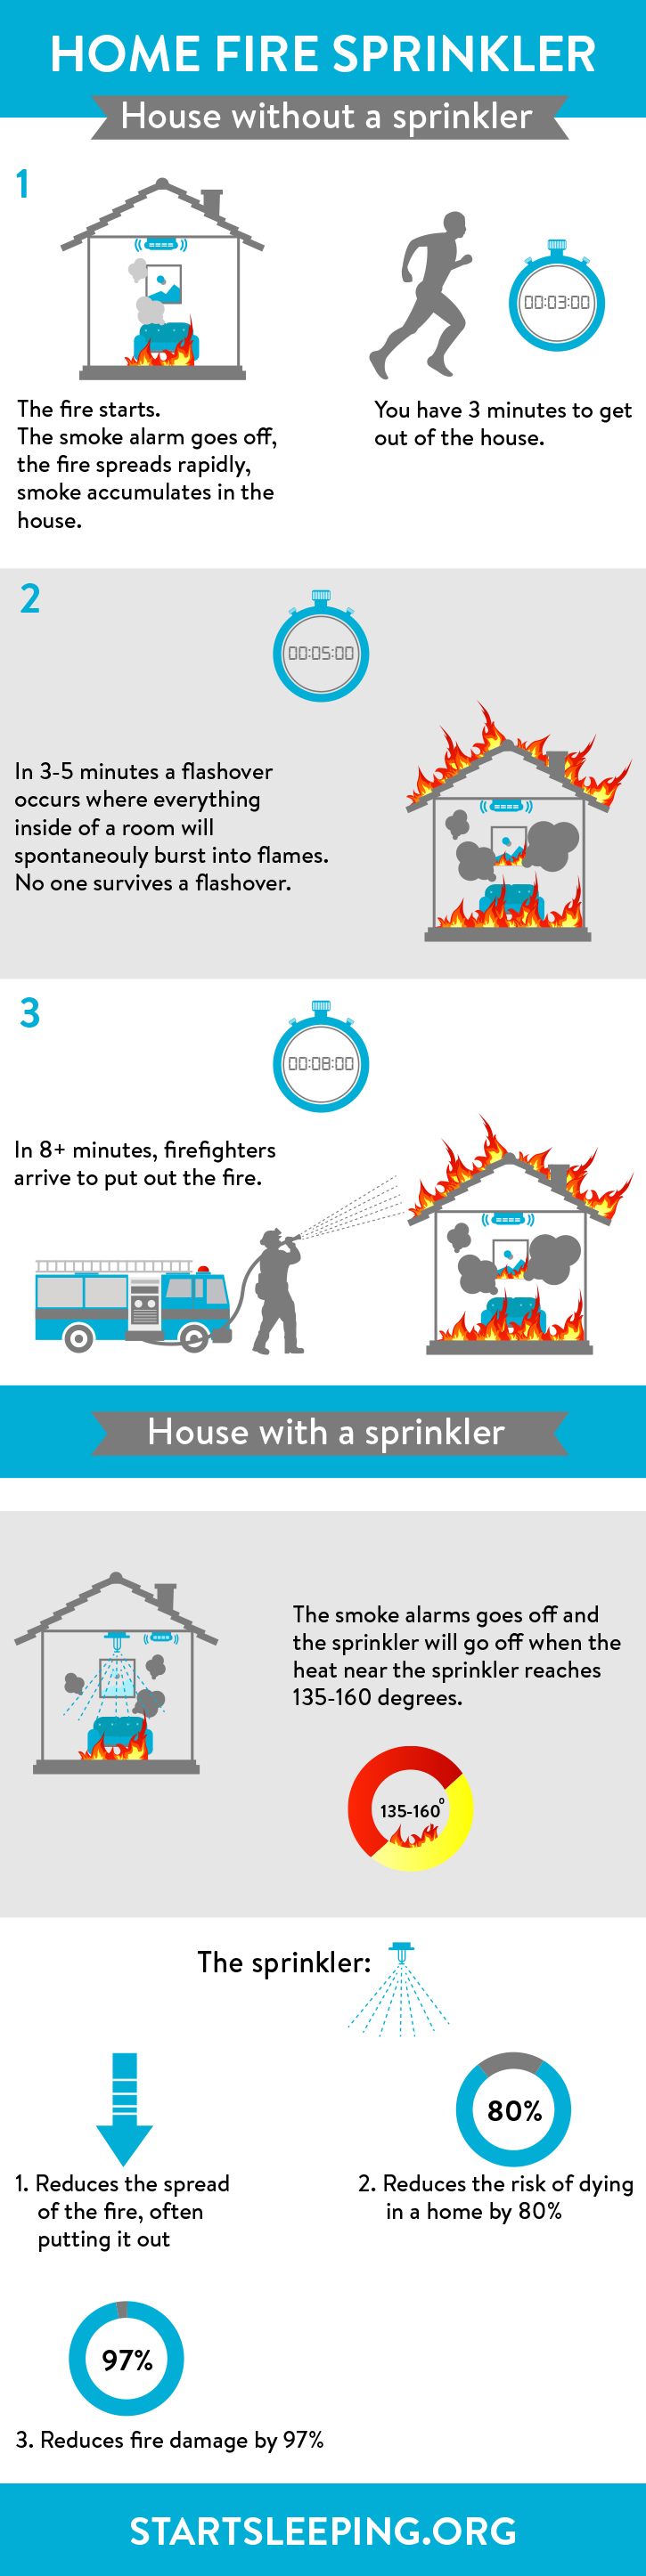 Sleep Fire Safety Infographic - Fire Safety While You Sleep